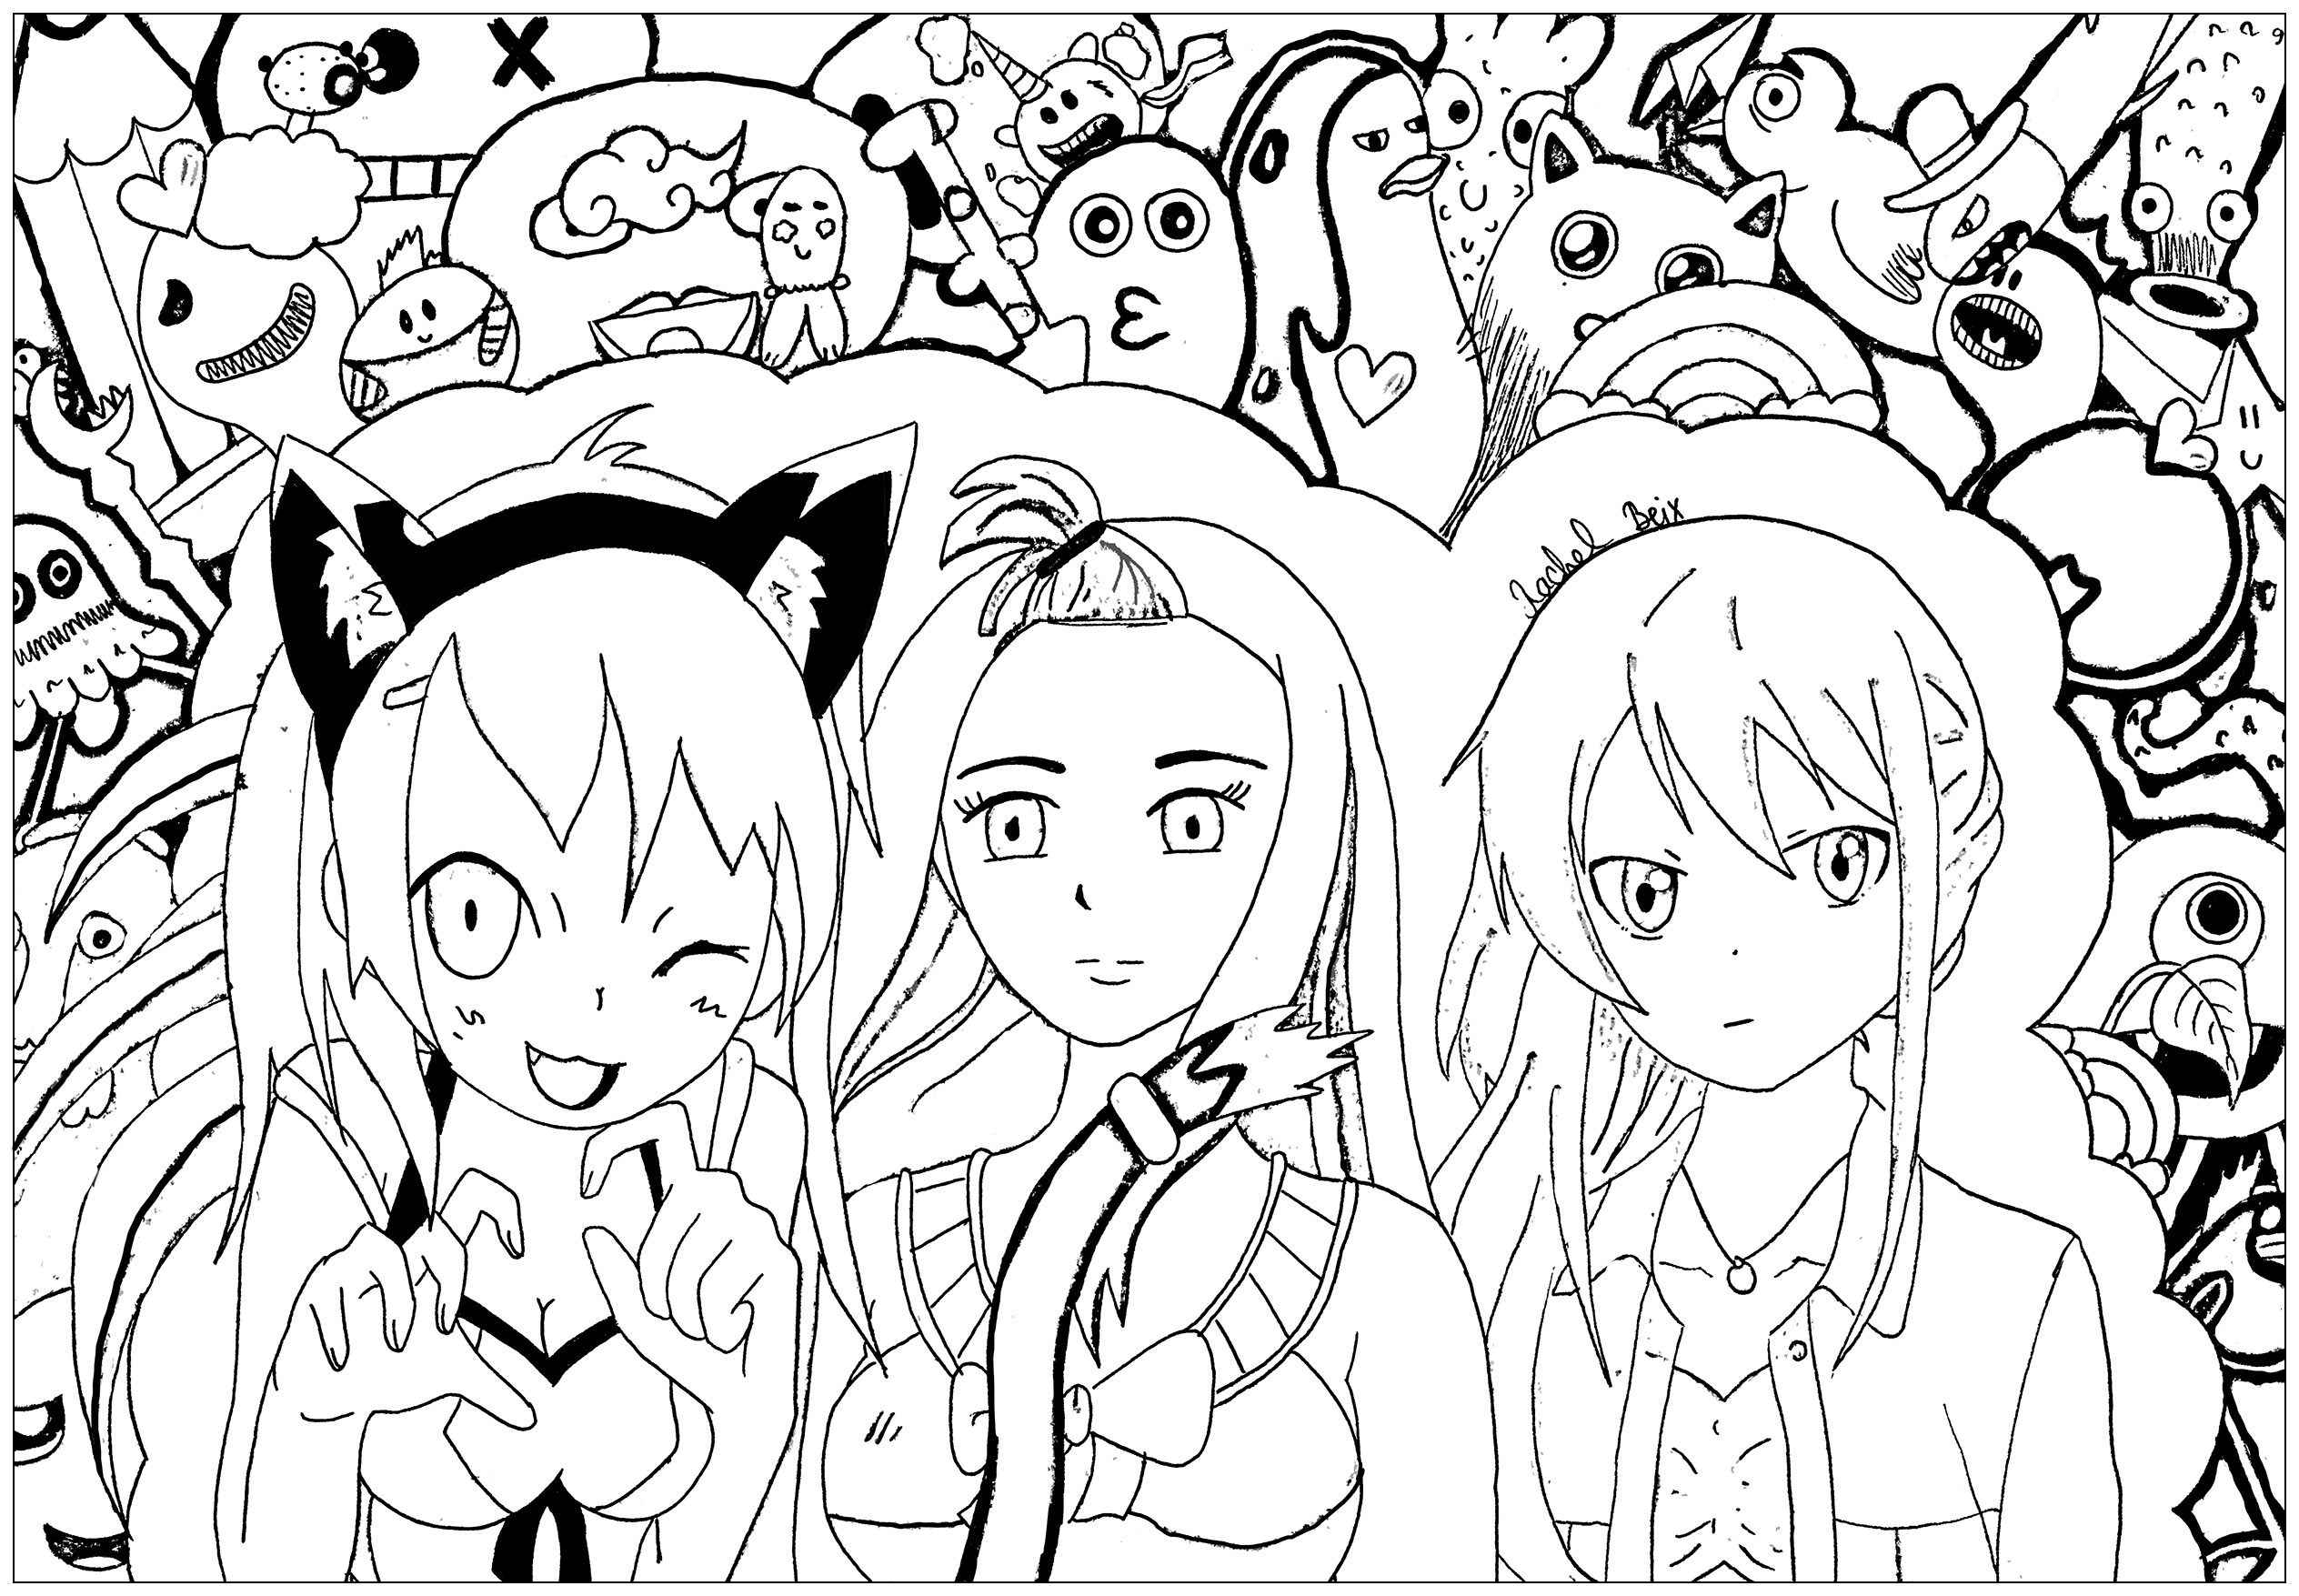 'Bazar' : Original Manga coloring page with 3 funny characters, and little kawaii characters in background